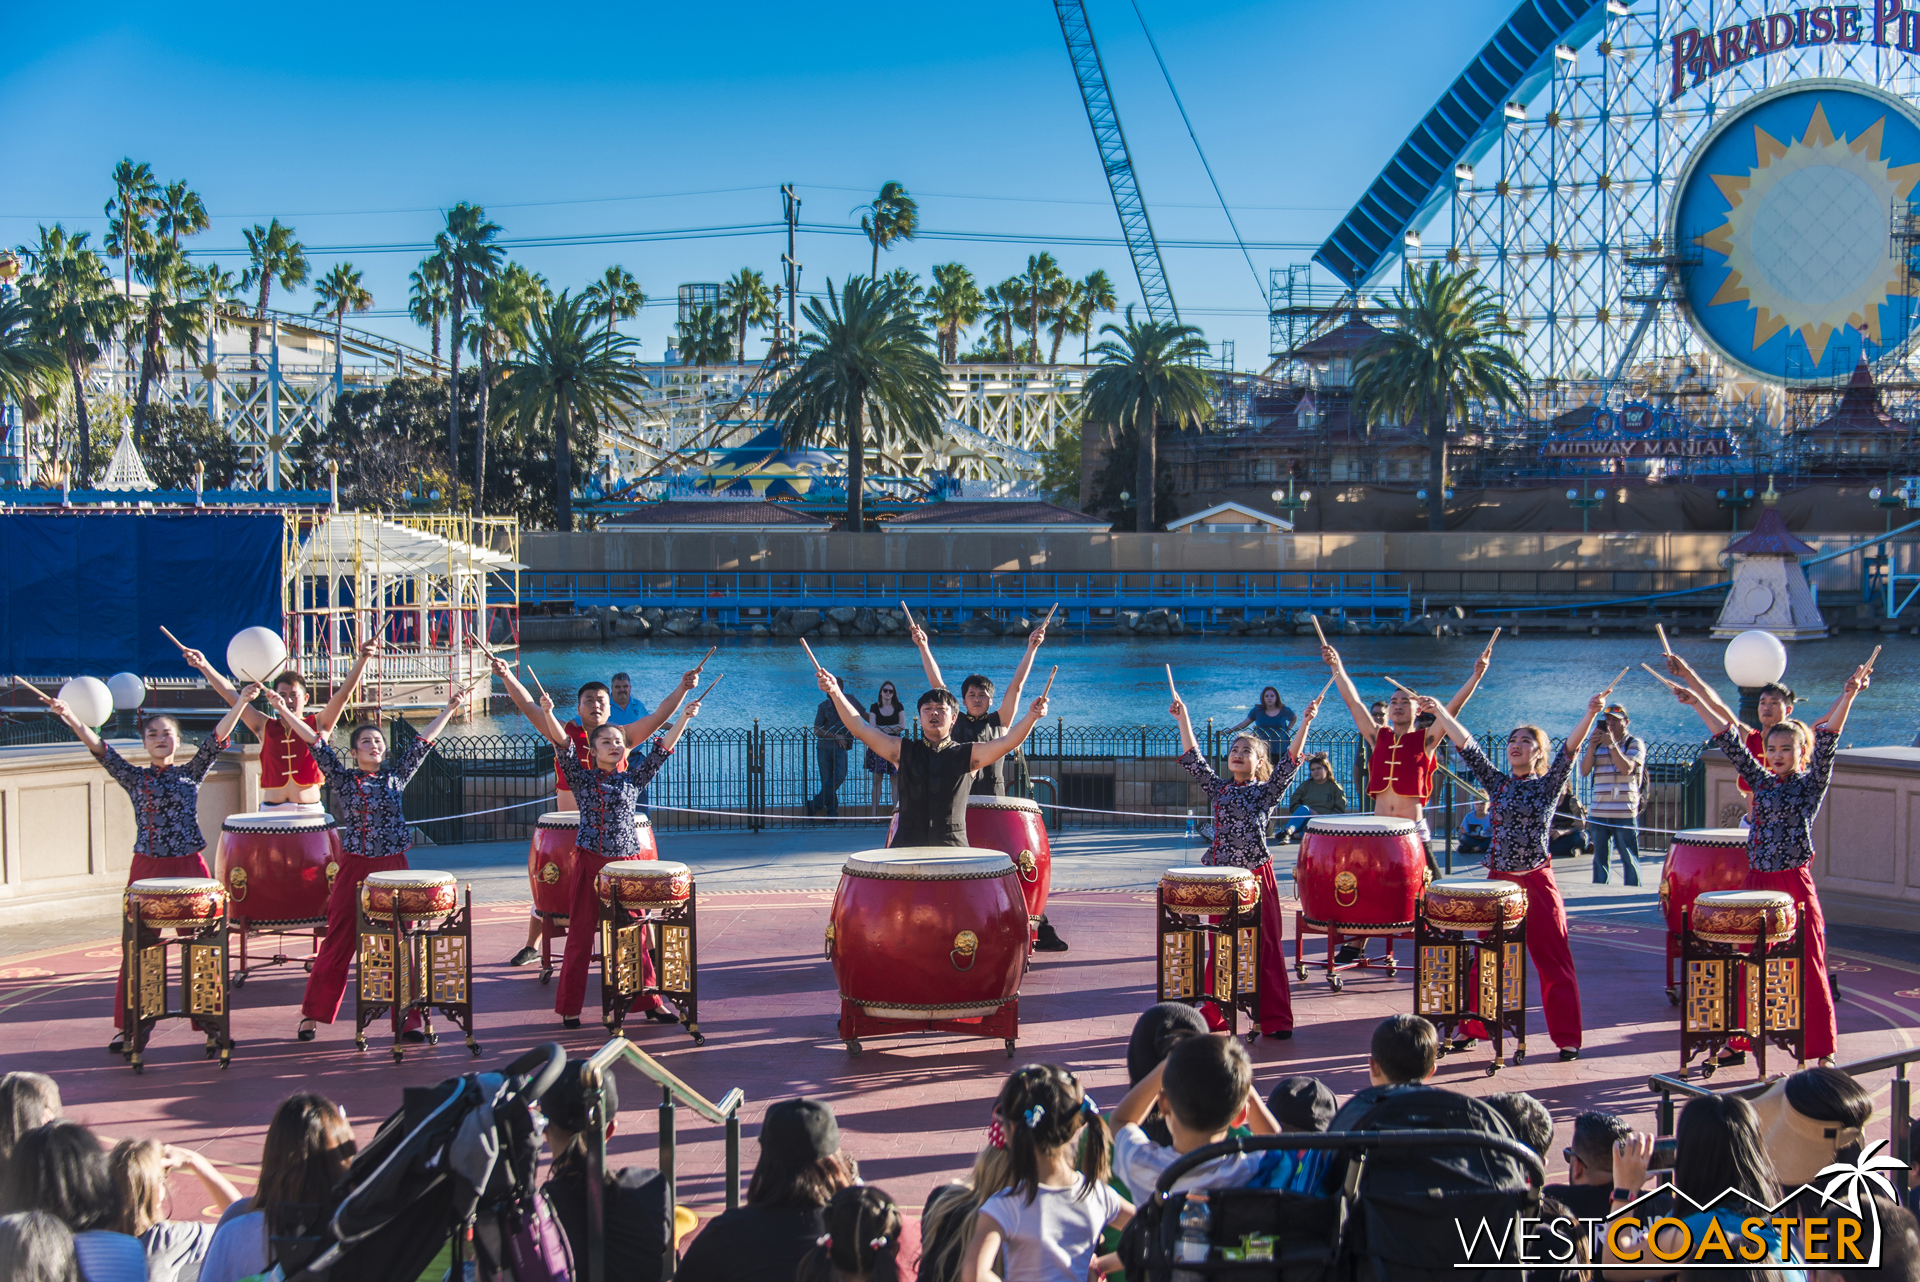 It's a great show and definitely recommended for all guests of the Lunar New Year celebration.